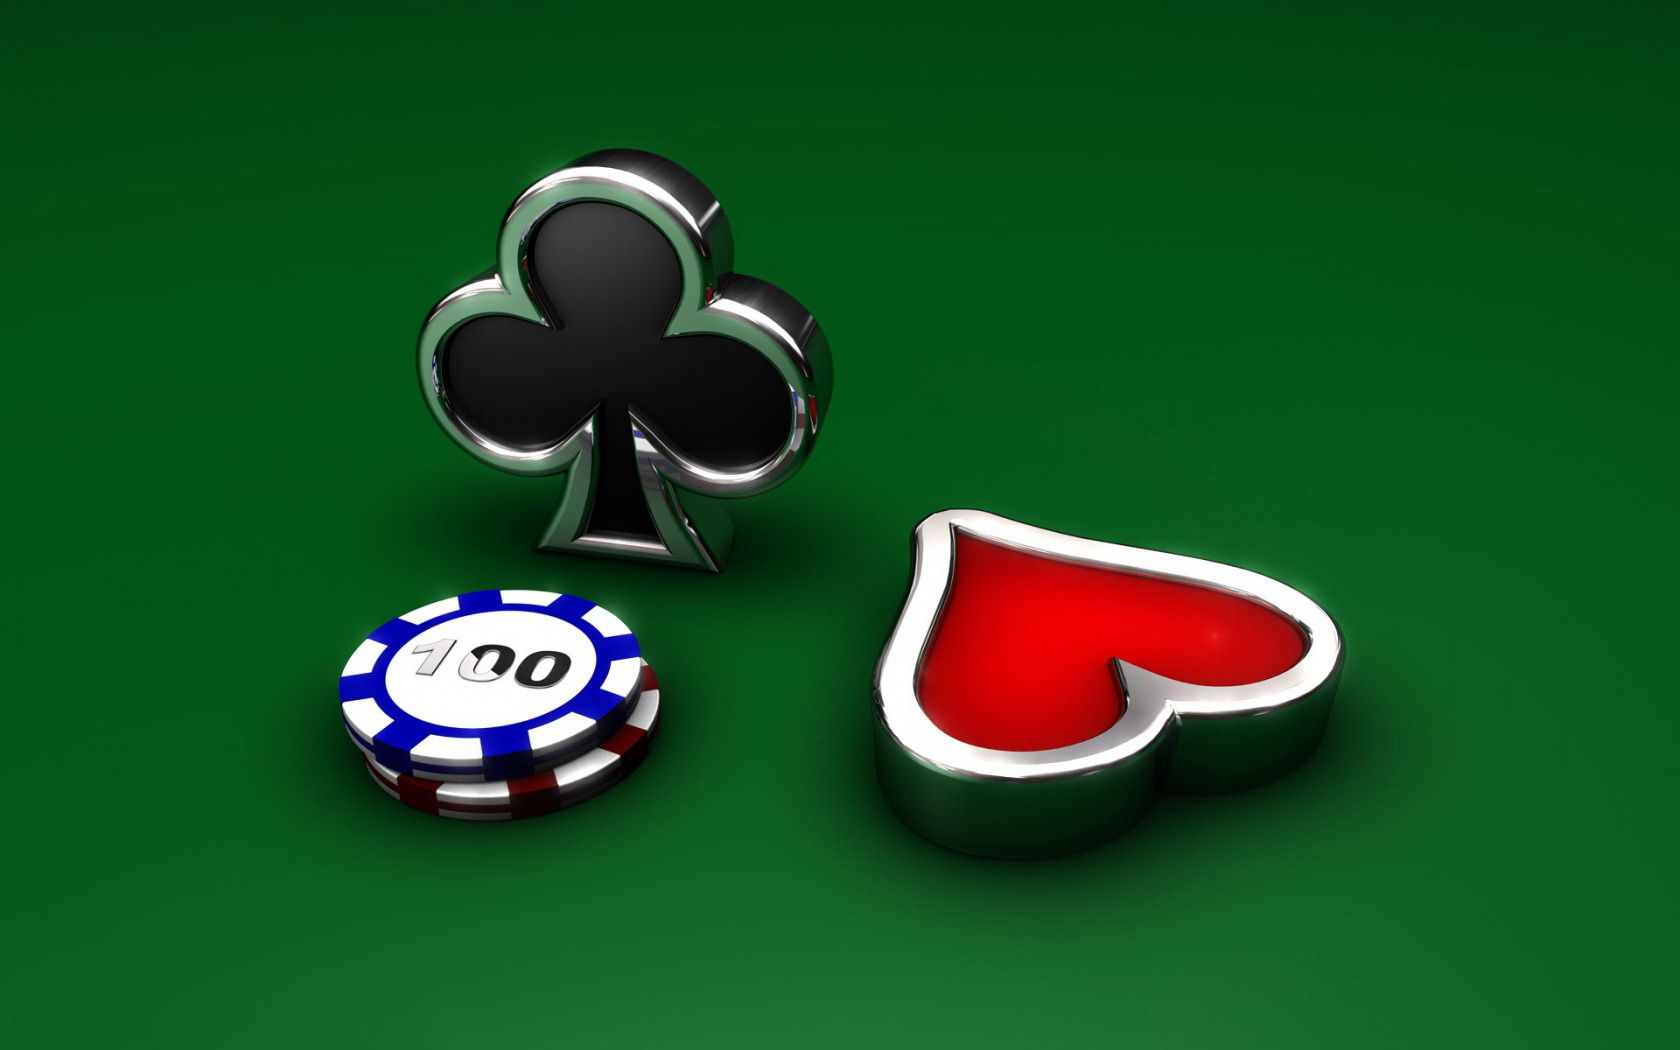 What Can Instagramm Train You About Online Gambling